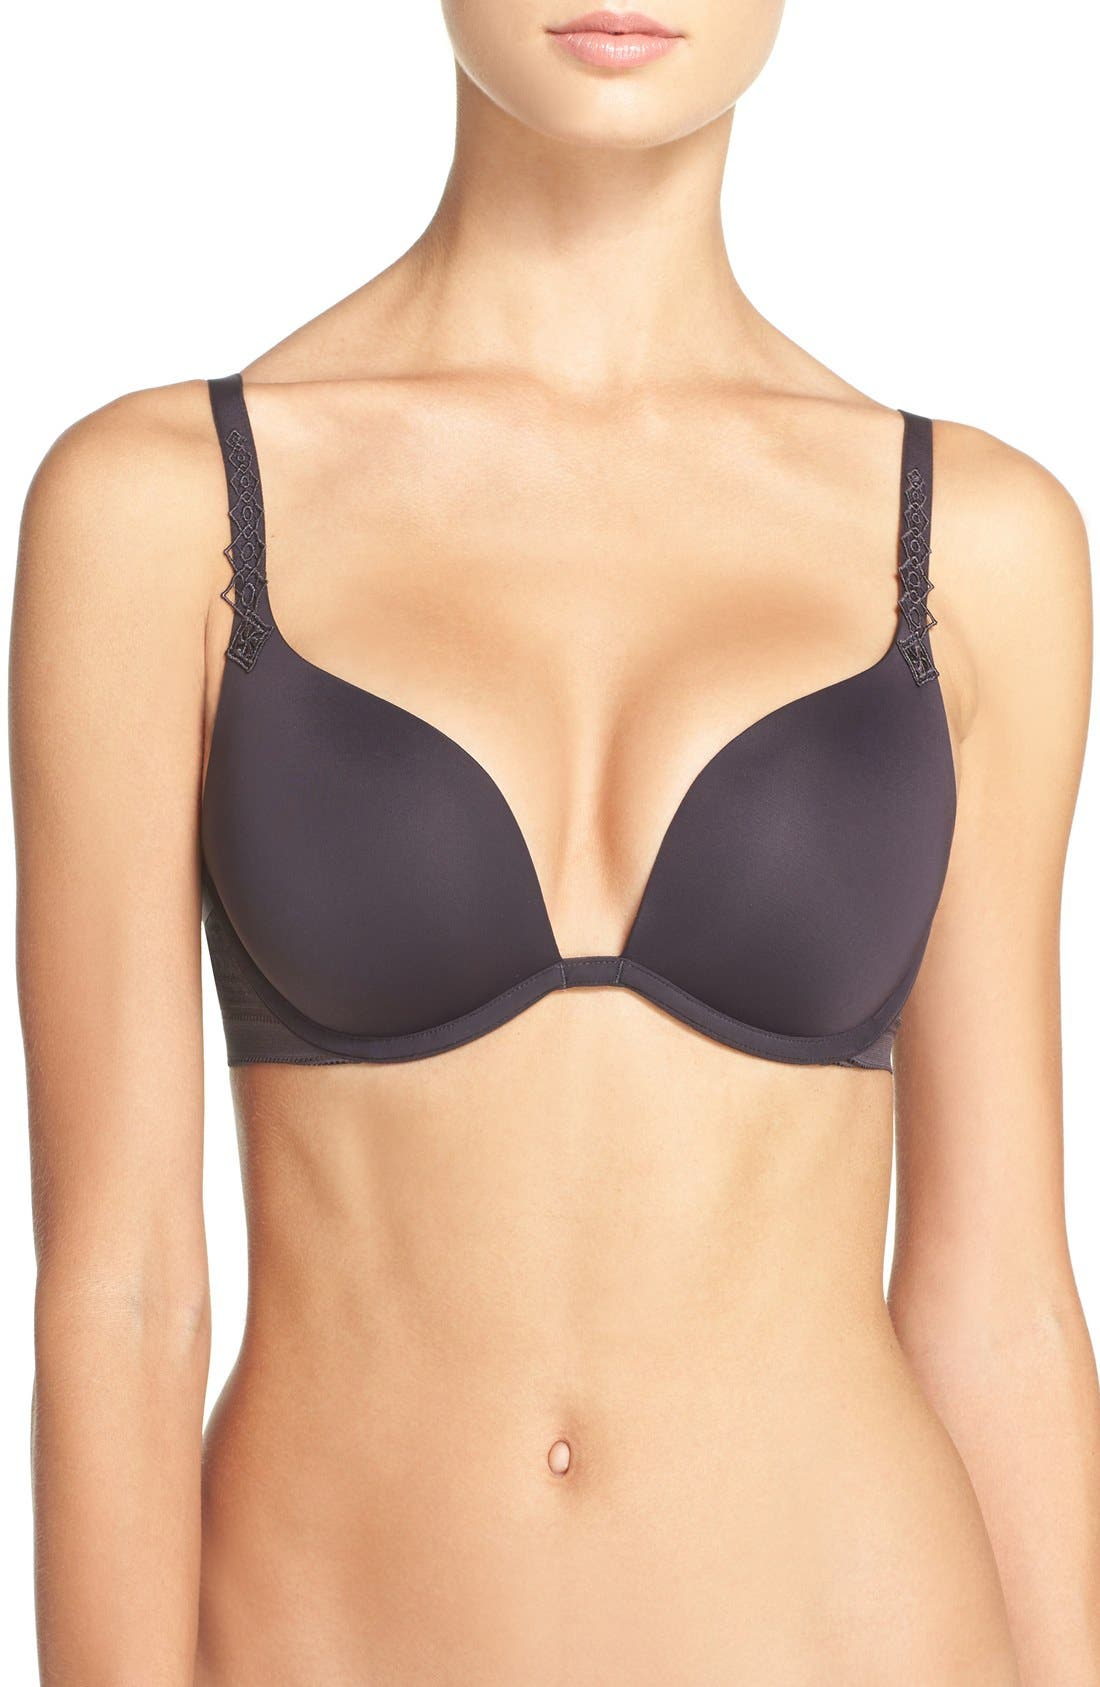 Simone Perele 'Muse' Underwire Plunge Push-Up Bra